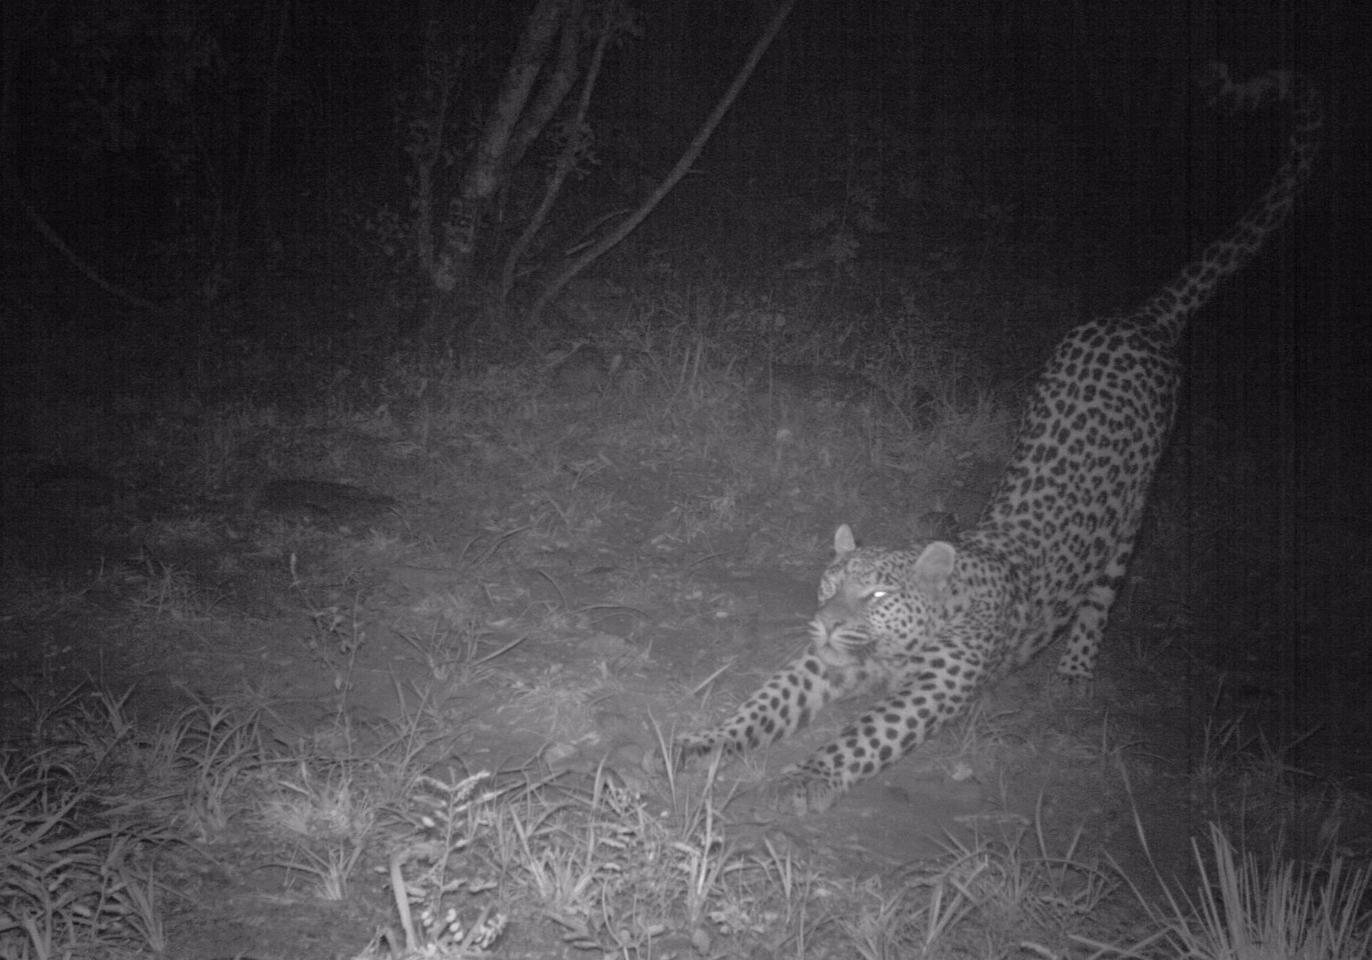 The researchers claim that a primary reason for the death of so many leopards is illegal hunting by humans